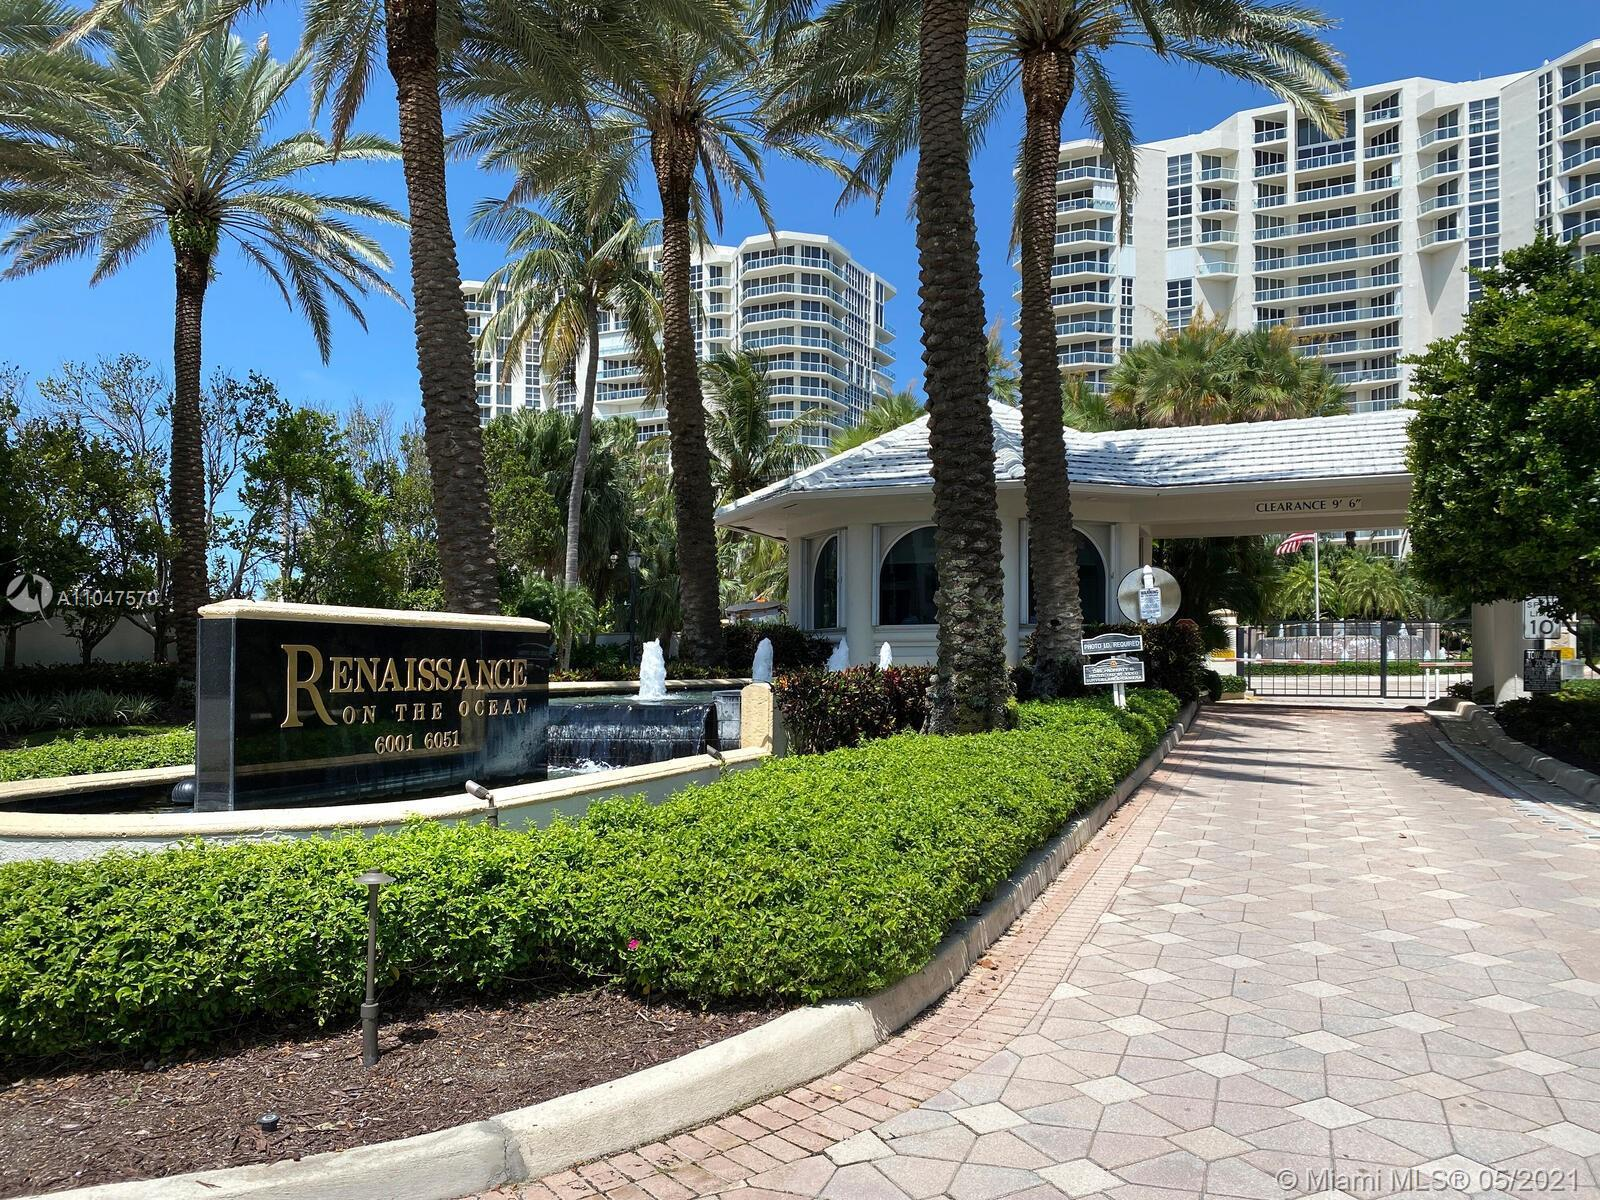 Contemporary, pristine 2205sf 2 bedrm + murphy bed, 3 bathrm corner home in the sky offers panoramic